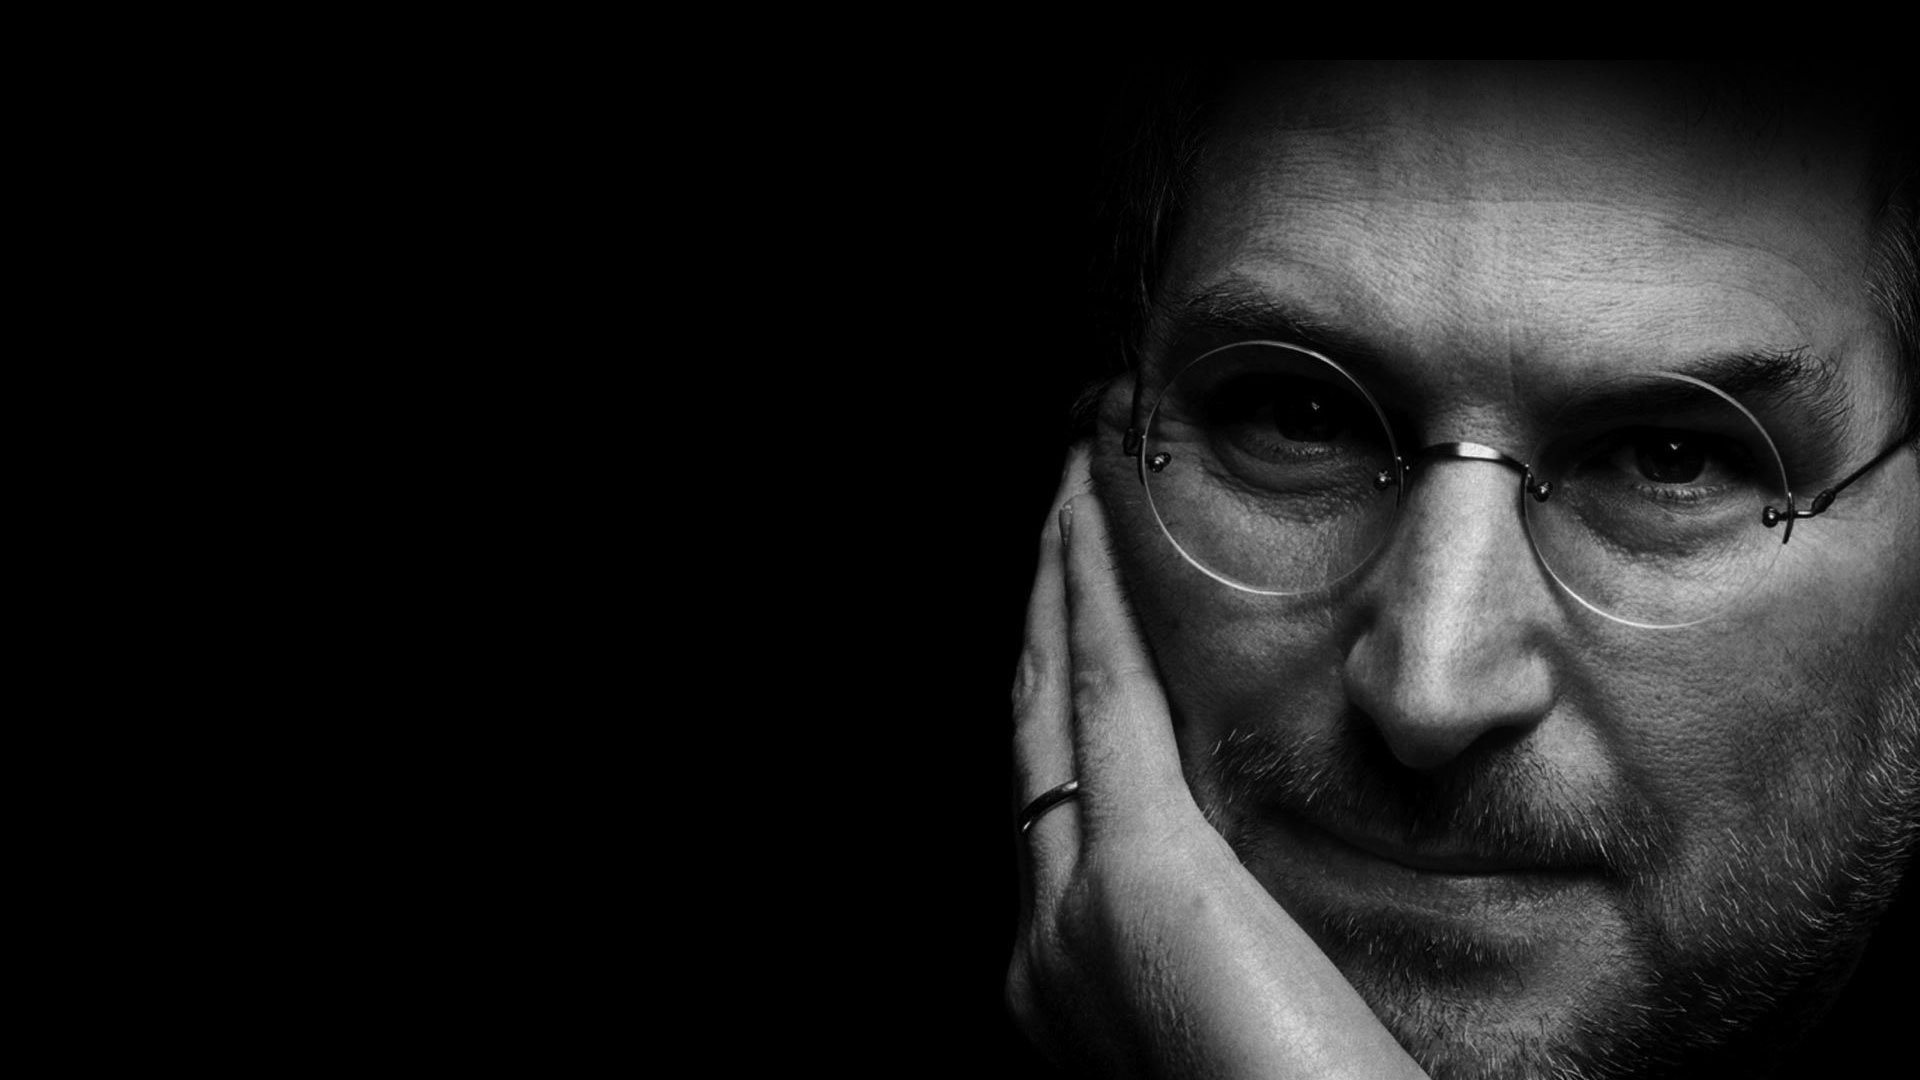 Steve Jobs' last words, a crispy morbid tale and Snapchat enters the personal space race